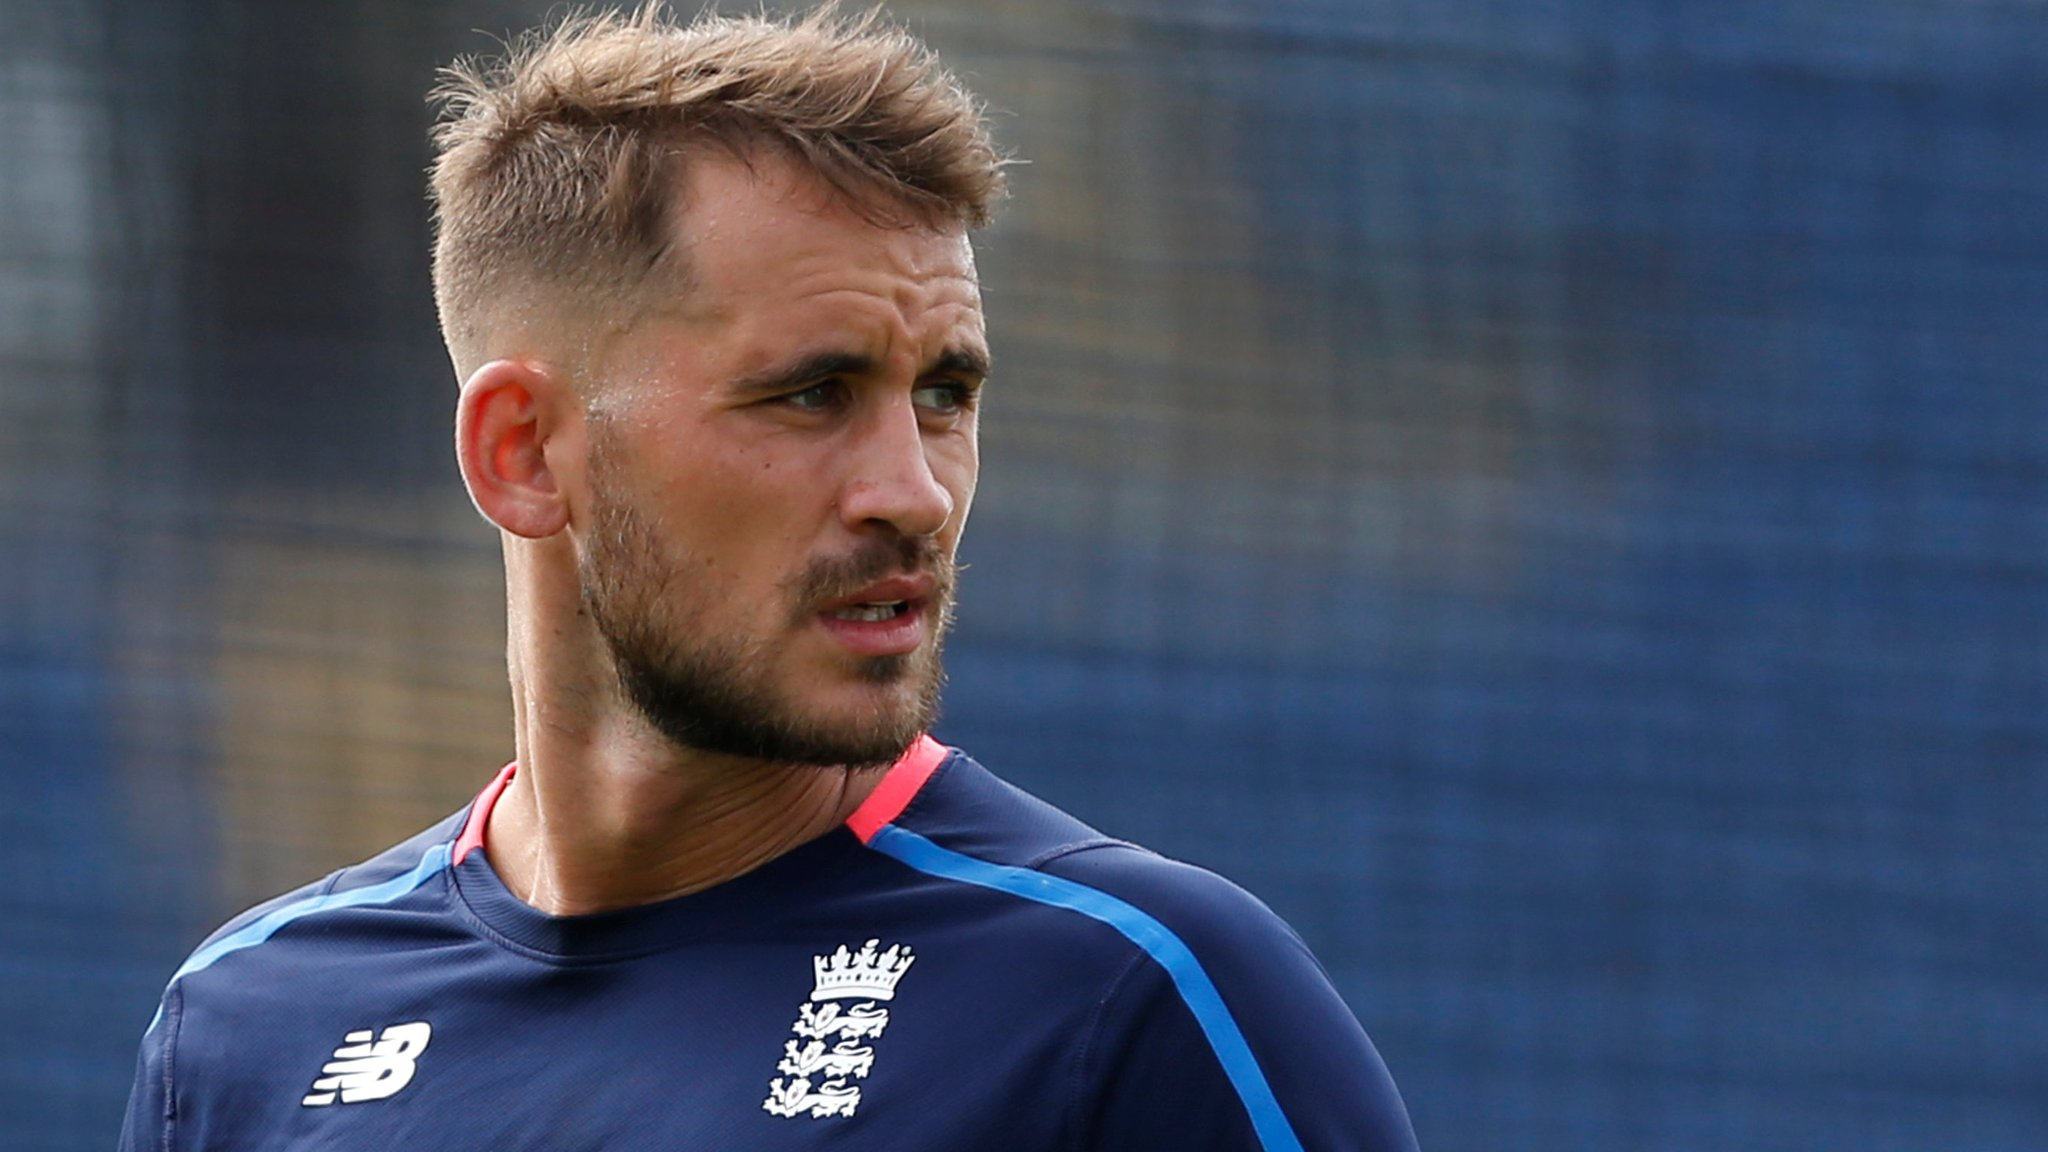 England v India: Alex Hales to miss one-day international series because of injury